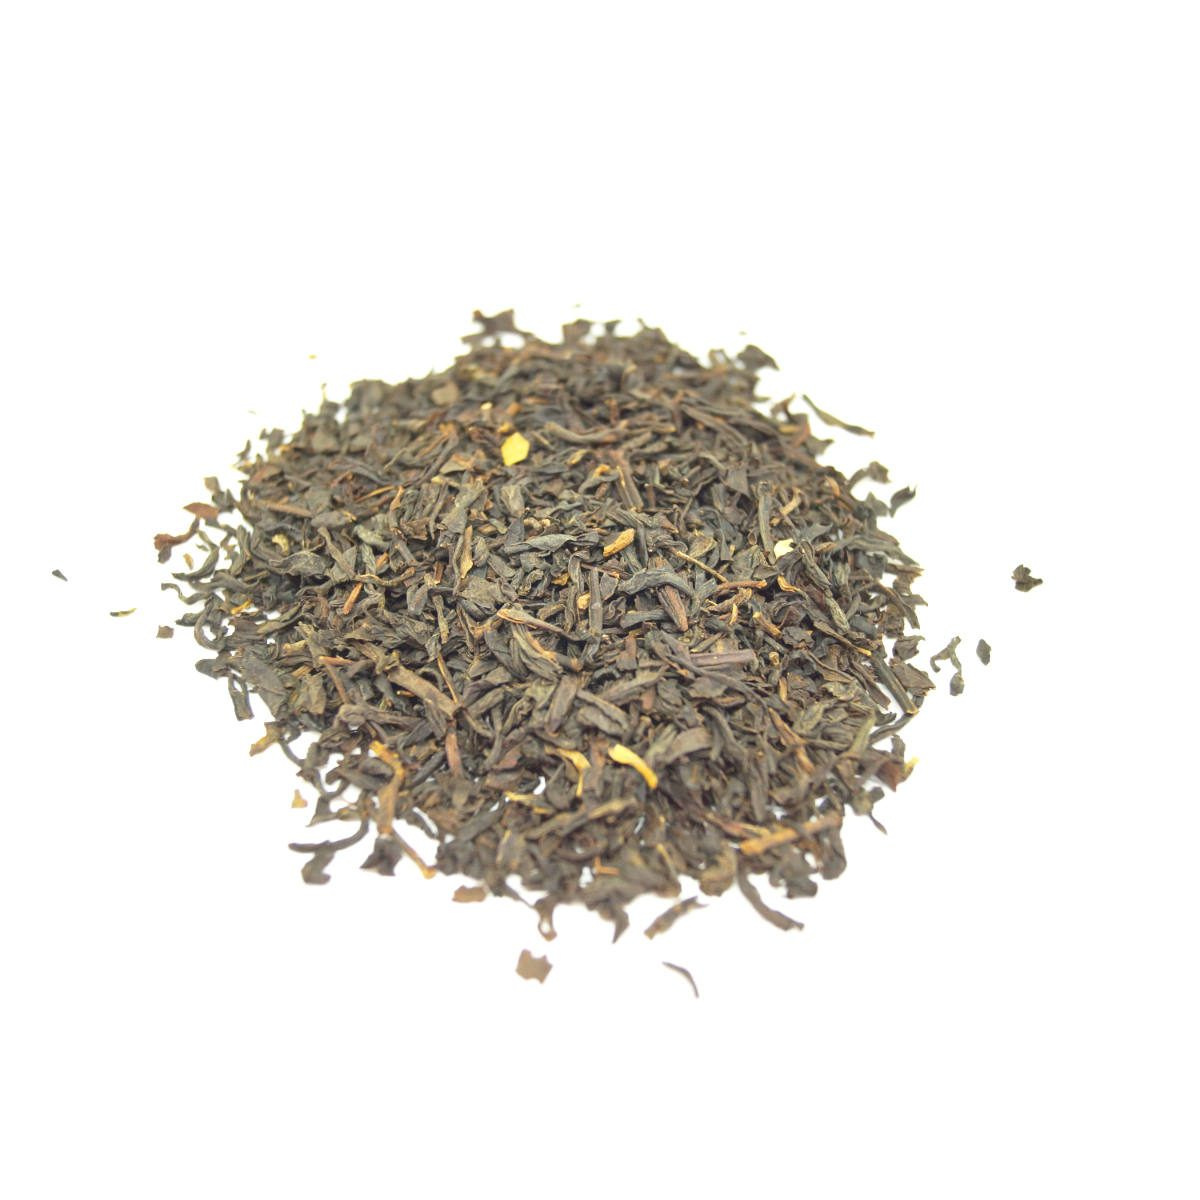 Looking for the perfect tea to make your pumpkin dreams come try....try this great blend of black teas and pumpkin!